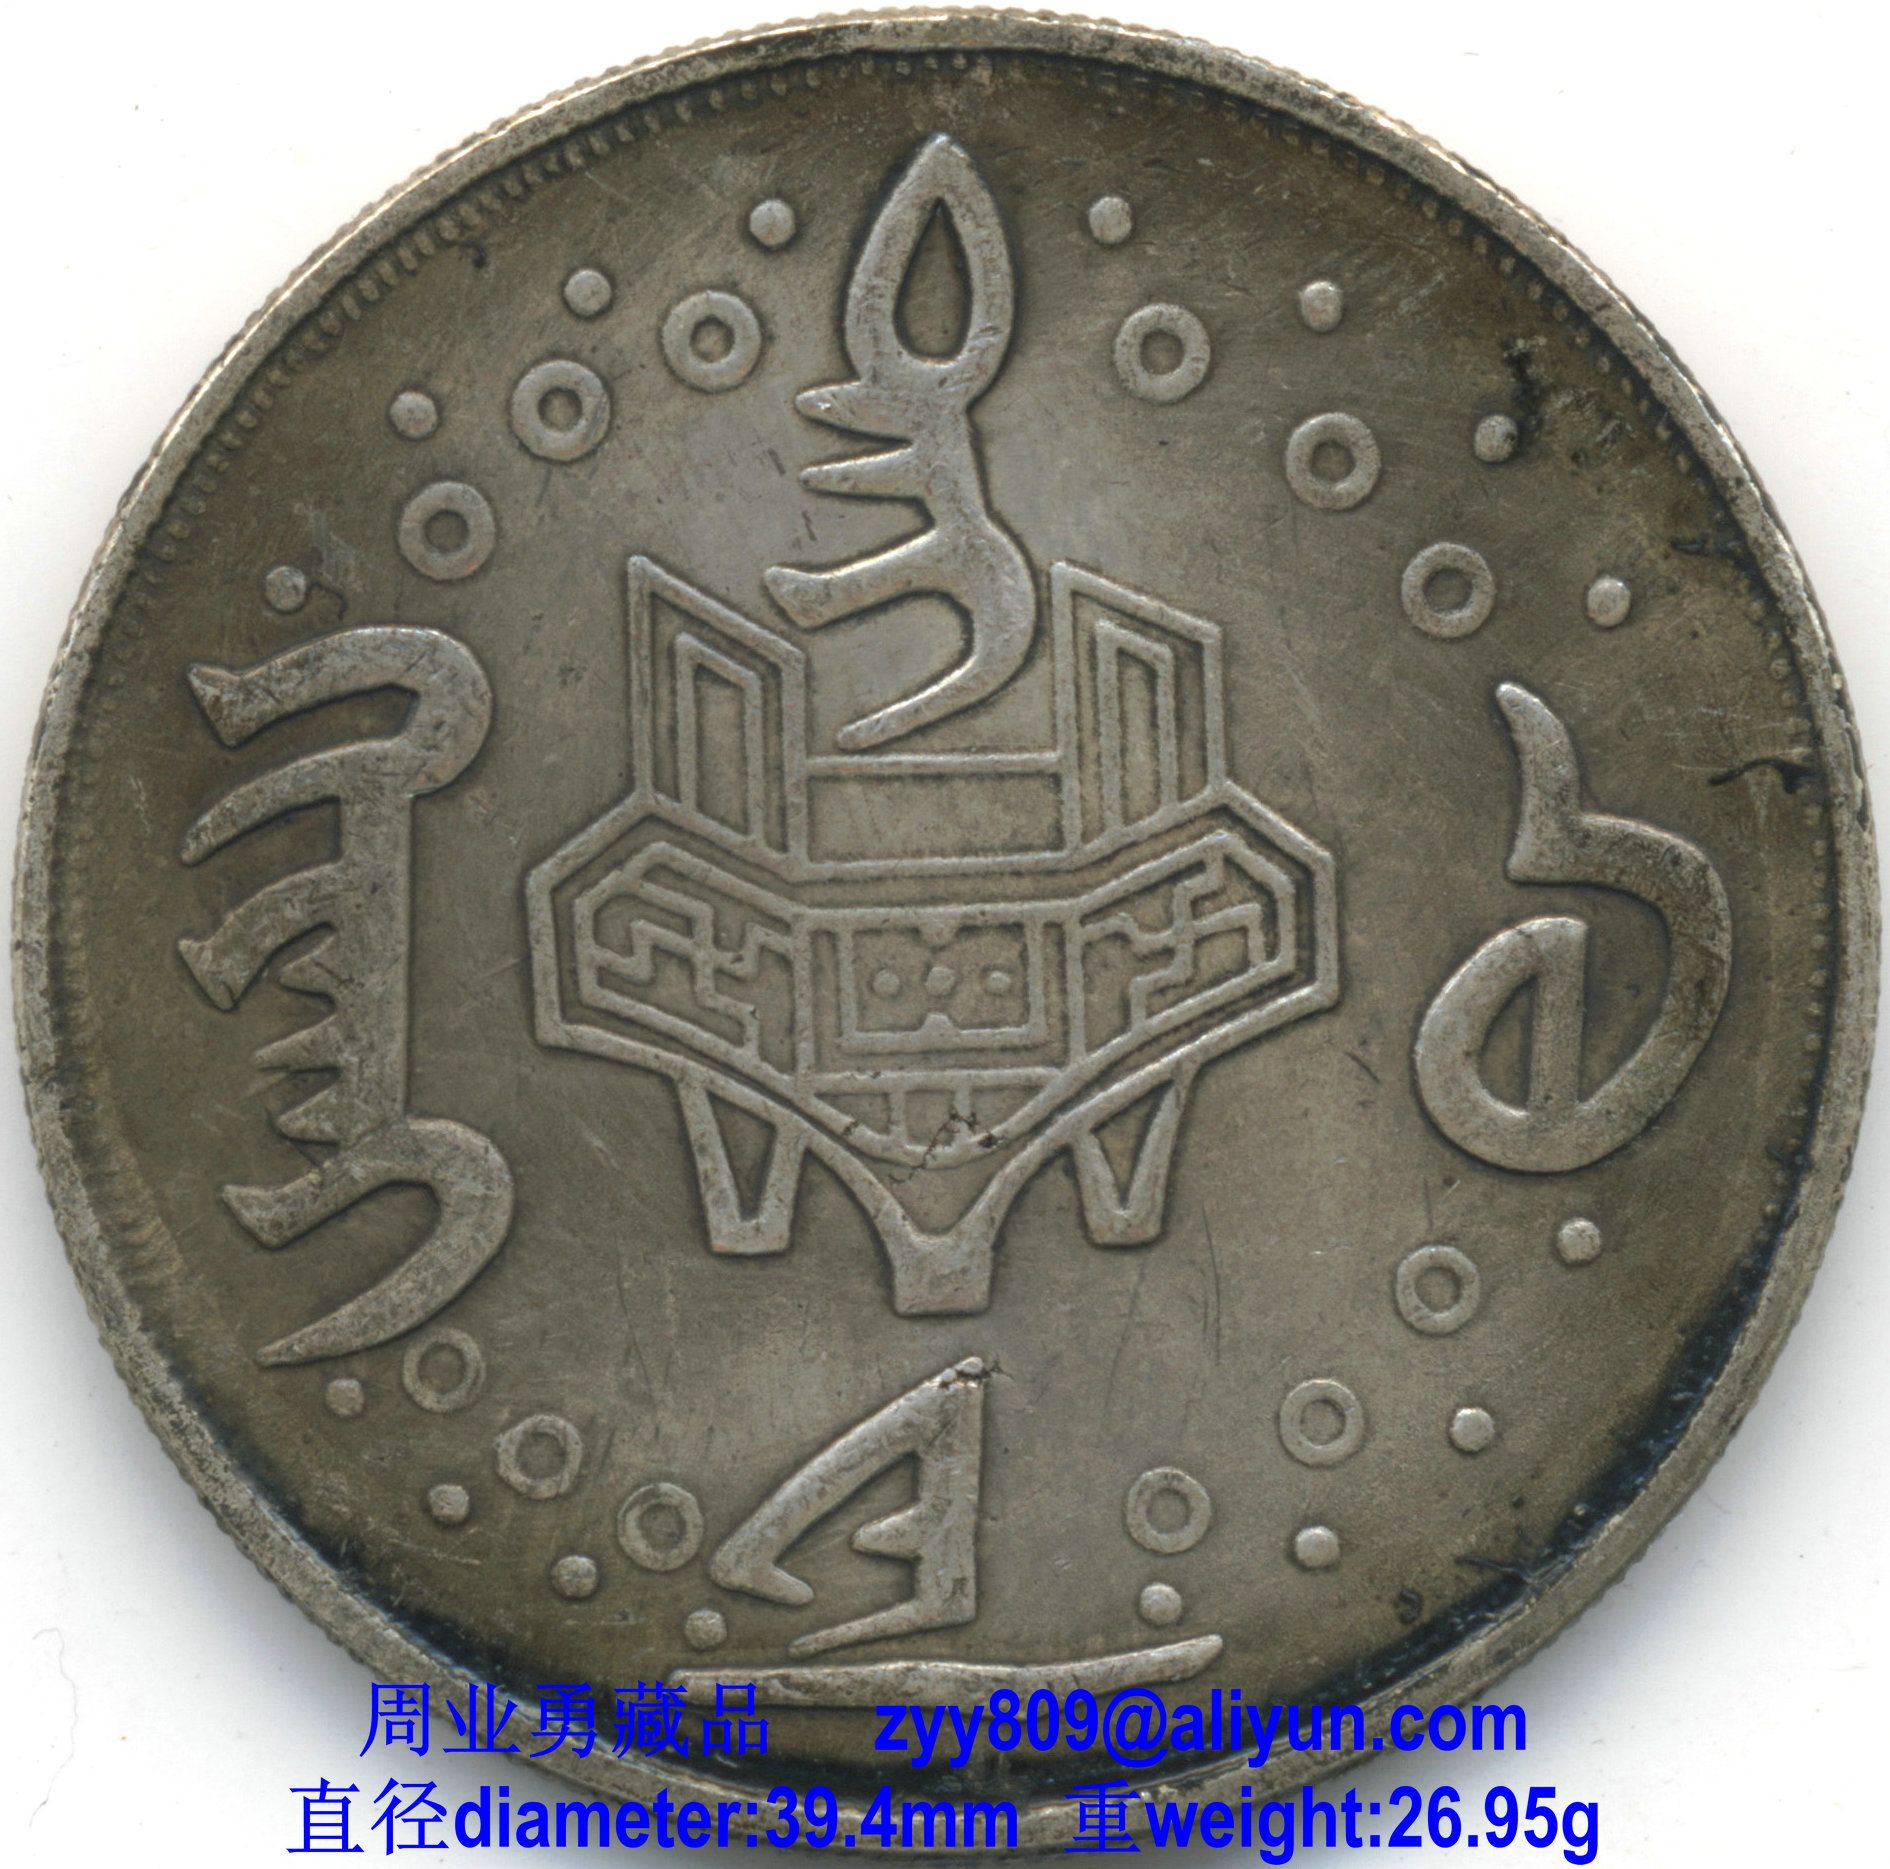 """1821-1850 China Qing Dynasty Sterling Silver Cake Coin 7 Mace 2 Candareens minted in Daoguang Years. Obverse: Portrait of an old man meaning longevity, with Chinese characters""""道光年鑄""""on the left (minted in Daoguang Years), """"足紋銀餅"""" on the right (Sterling Silver Cake Coin) and """"庫平七二"""" below (7 Mace 2 Candareens); Reverse: an ancient cooking vessel with two loop handles and three legs, 12 small decorative rings and 16 small dots, evenly separated by 4 Manchu scripts. 1821-1850年清代道光年鑄庫平七二足紋銀餅"""